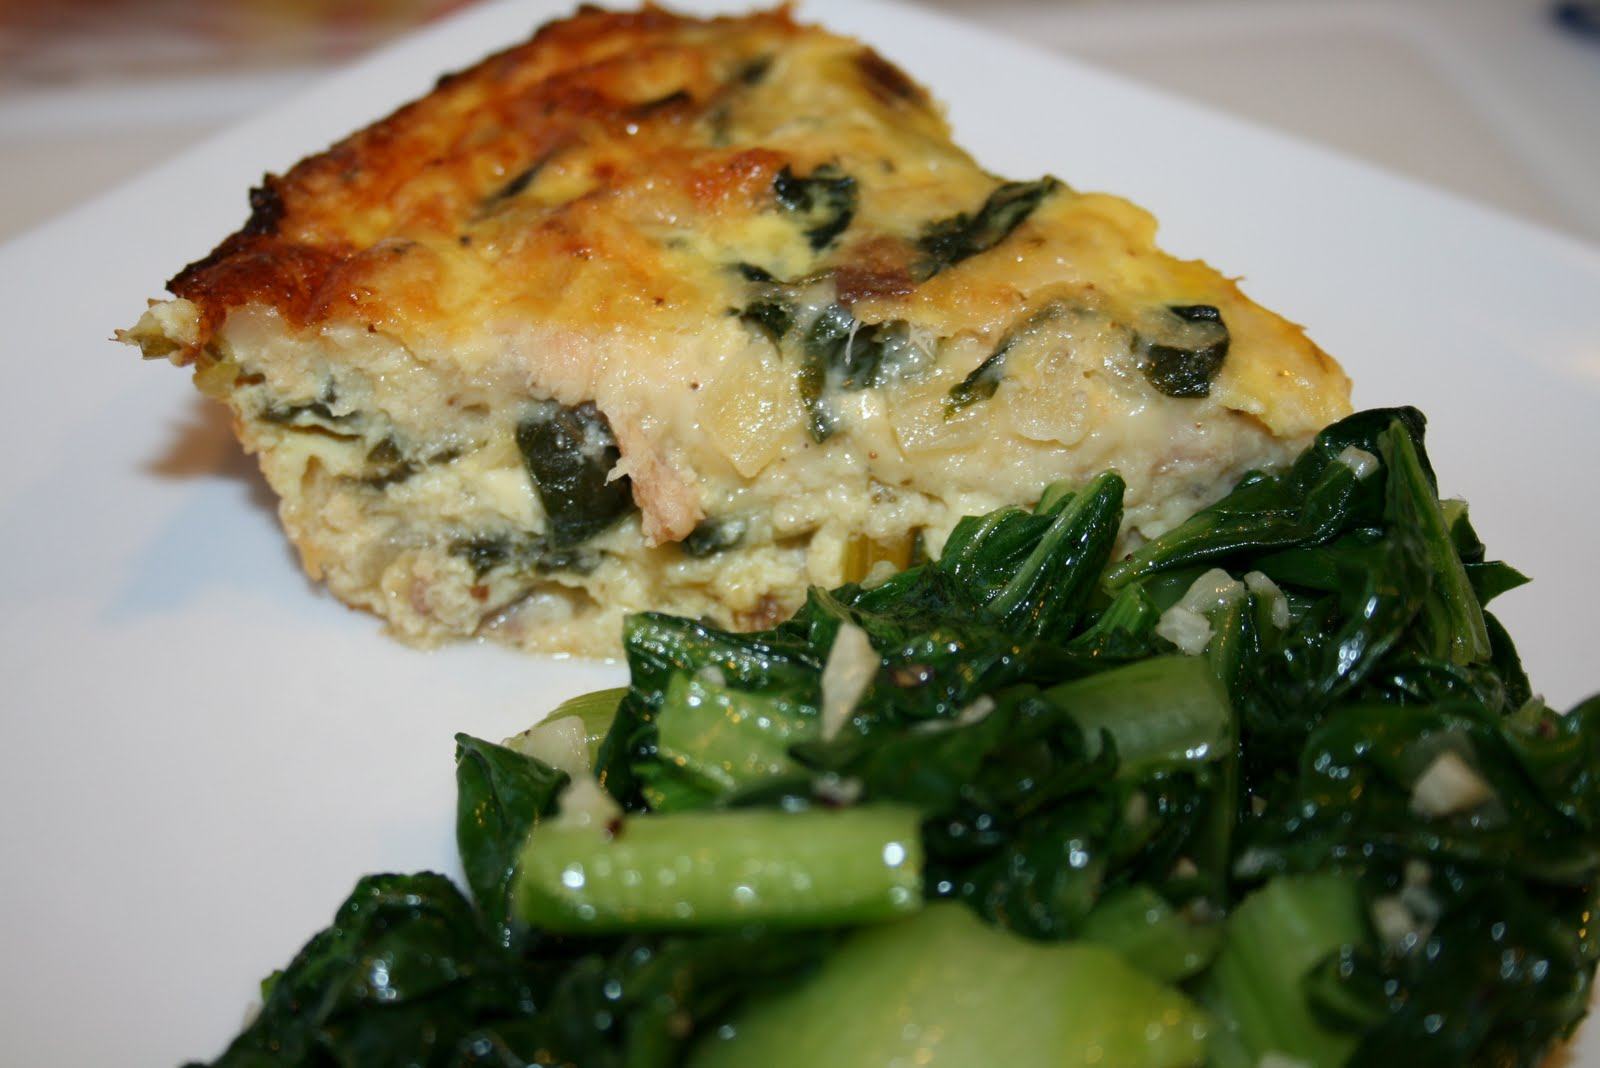 ... What's Cookin?: (Meatless Monday) Smoked Salmon and Swiss Chard Quiche